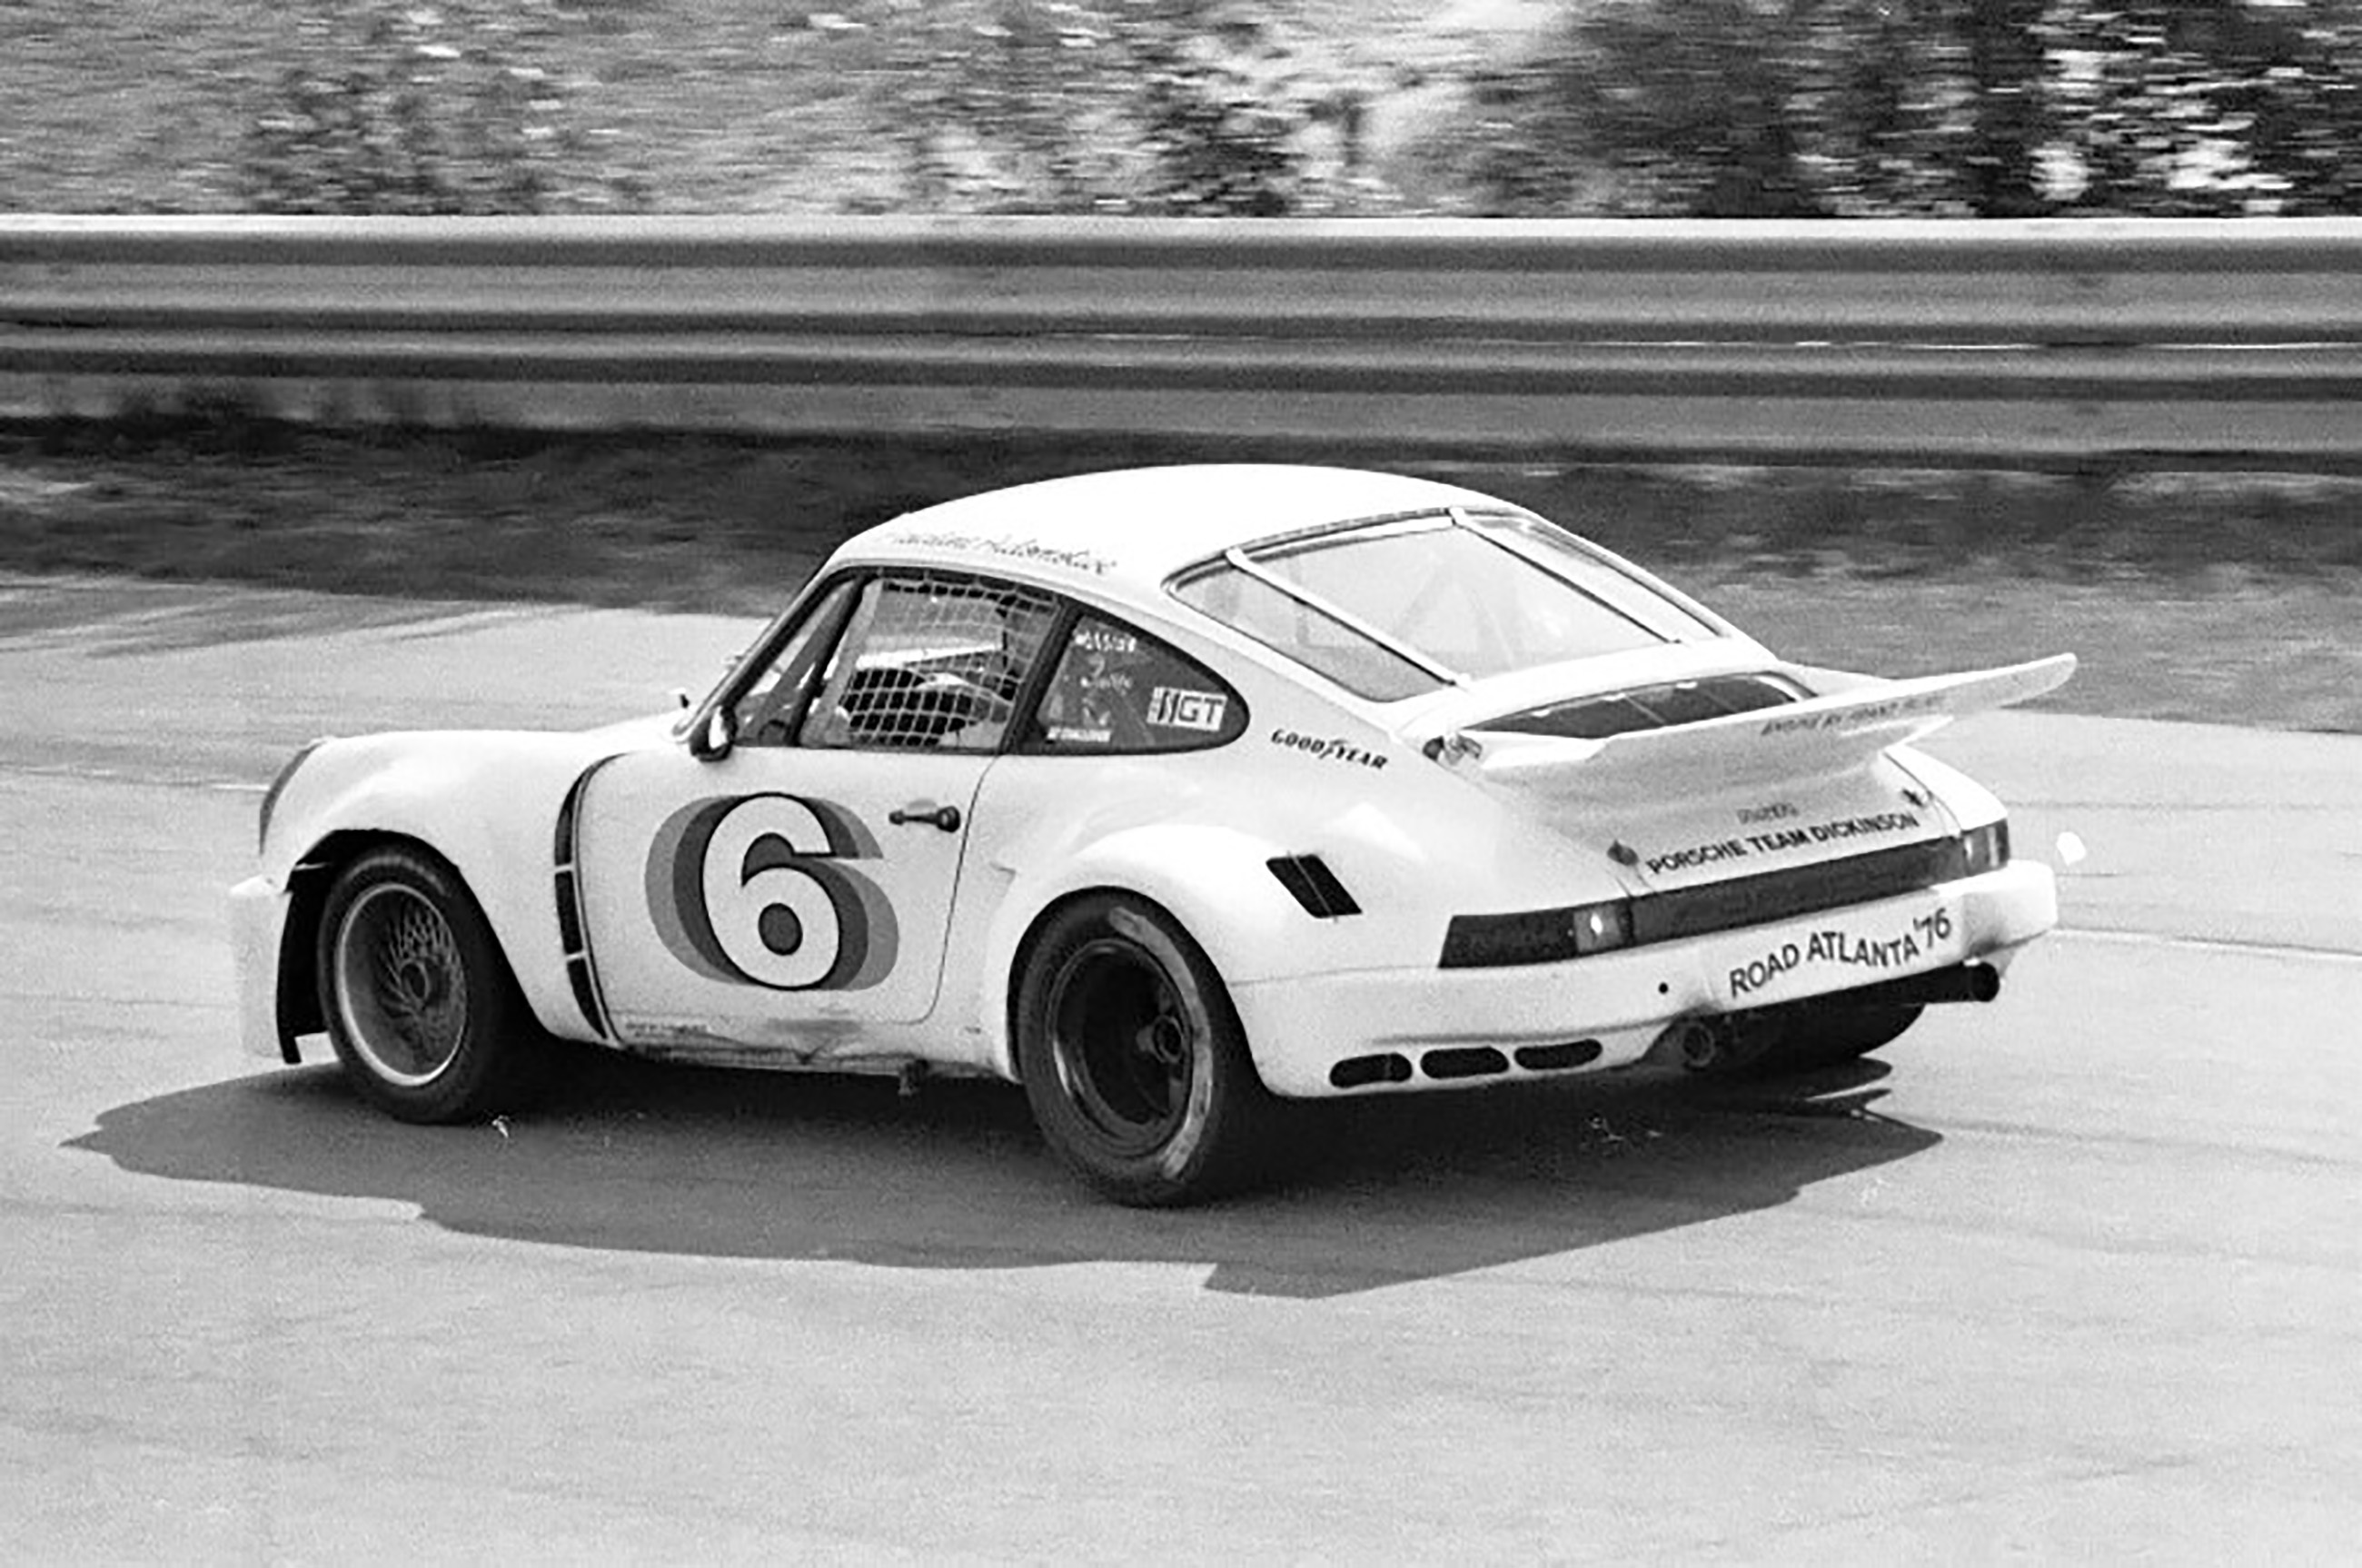 PORSCHE-CARRERA-HURLEY-HAYWOOD copy.jpg